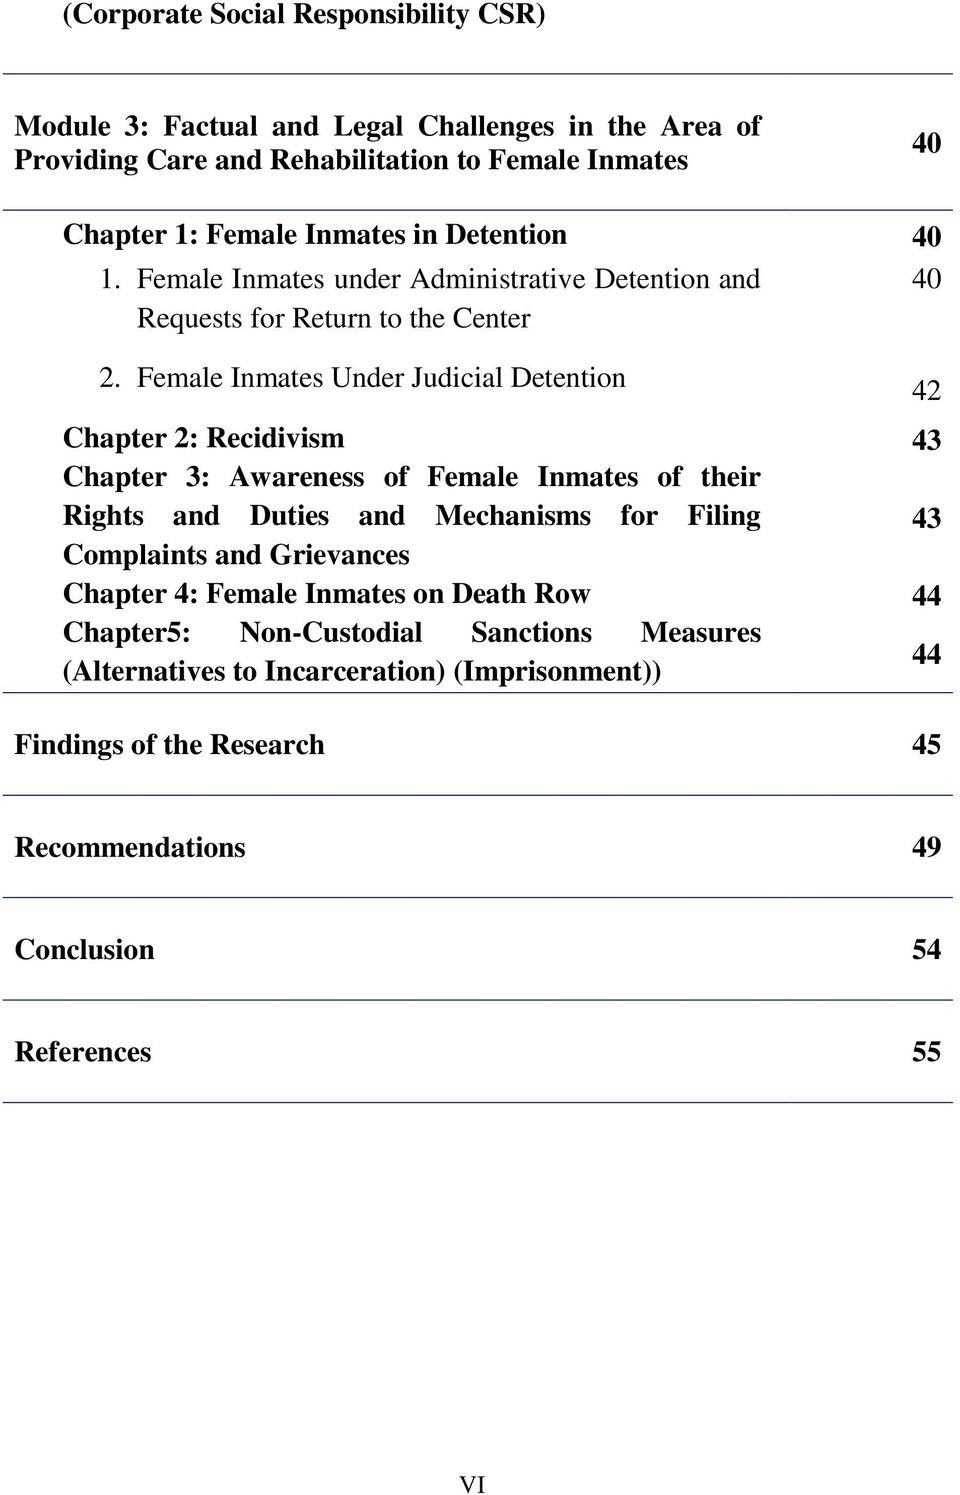 Female Inmates Under Judicial Detention Chapter 2: Recidivism Chapter 3: Awareness of Female Inmates of their Rights and Duties and Mechanisms for Filing Complaints and